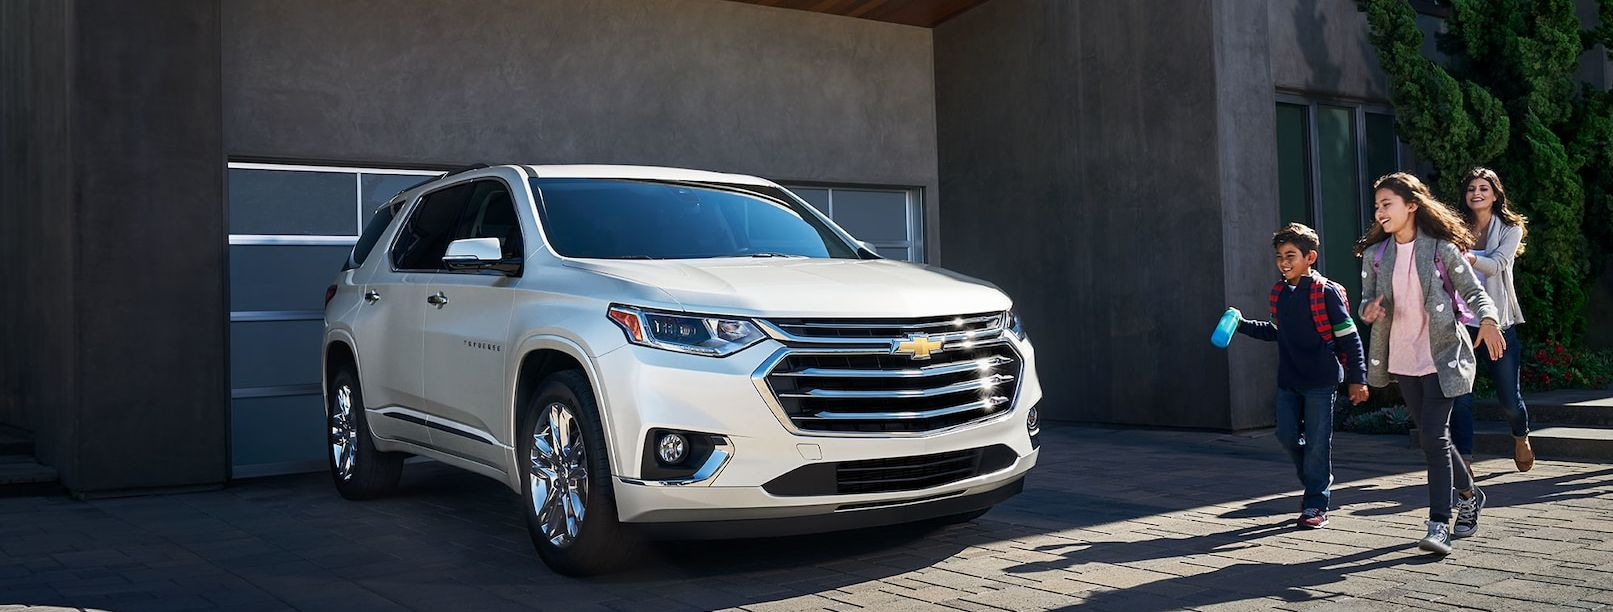 2020 Chevrolet Traverse for Sale near Lapeer, MI